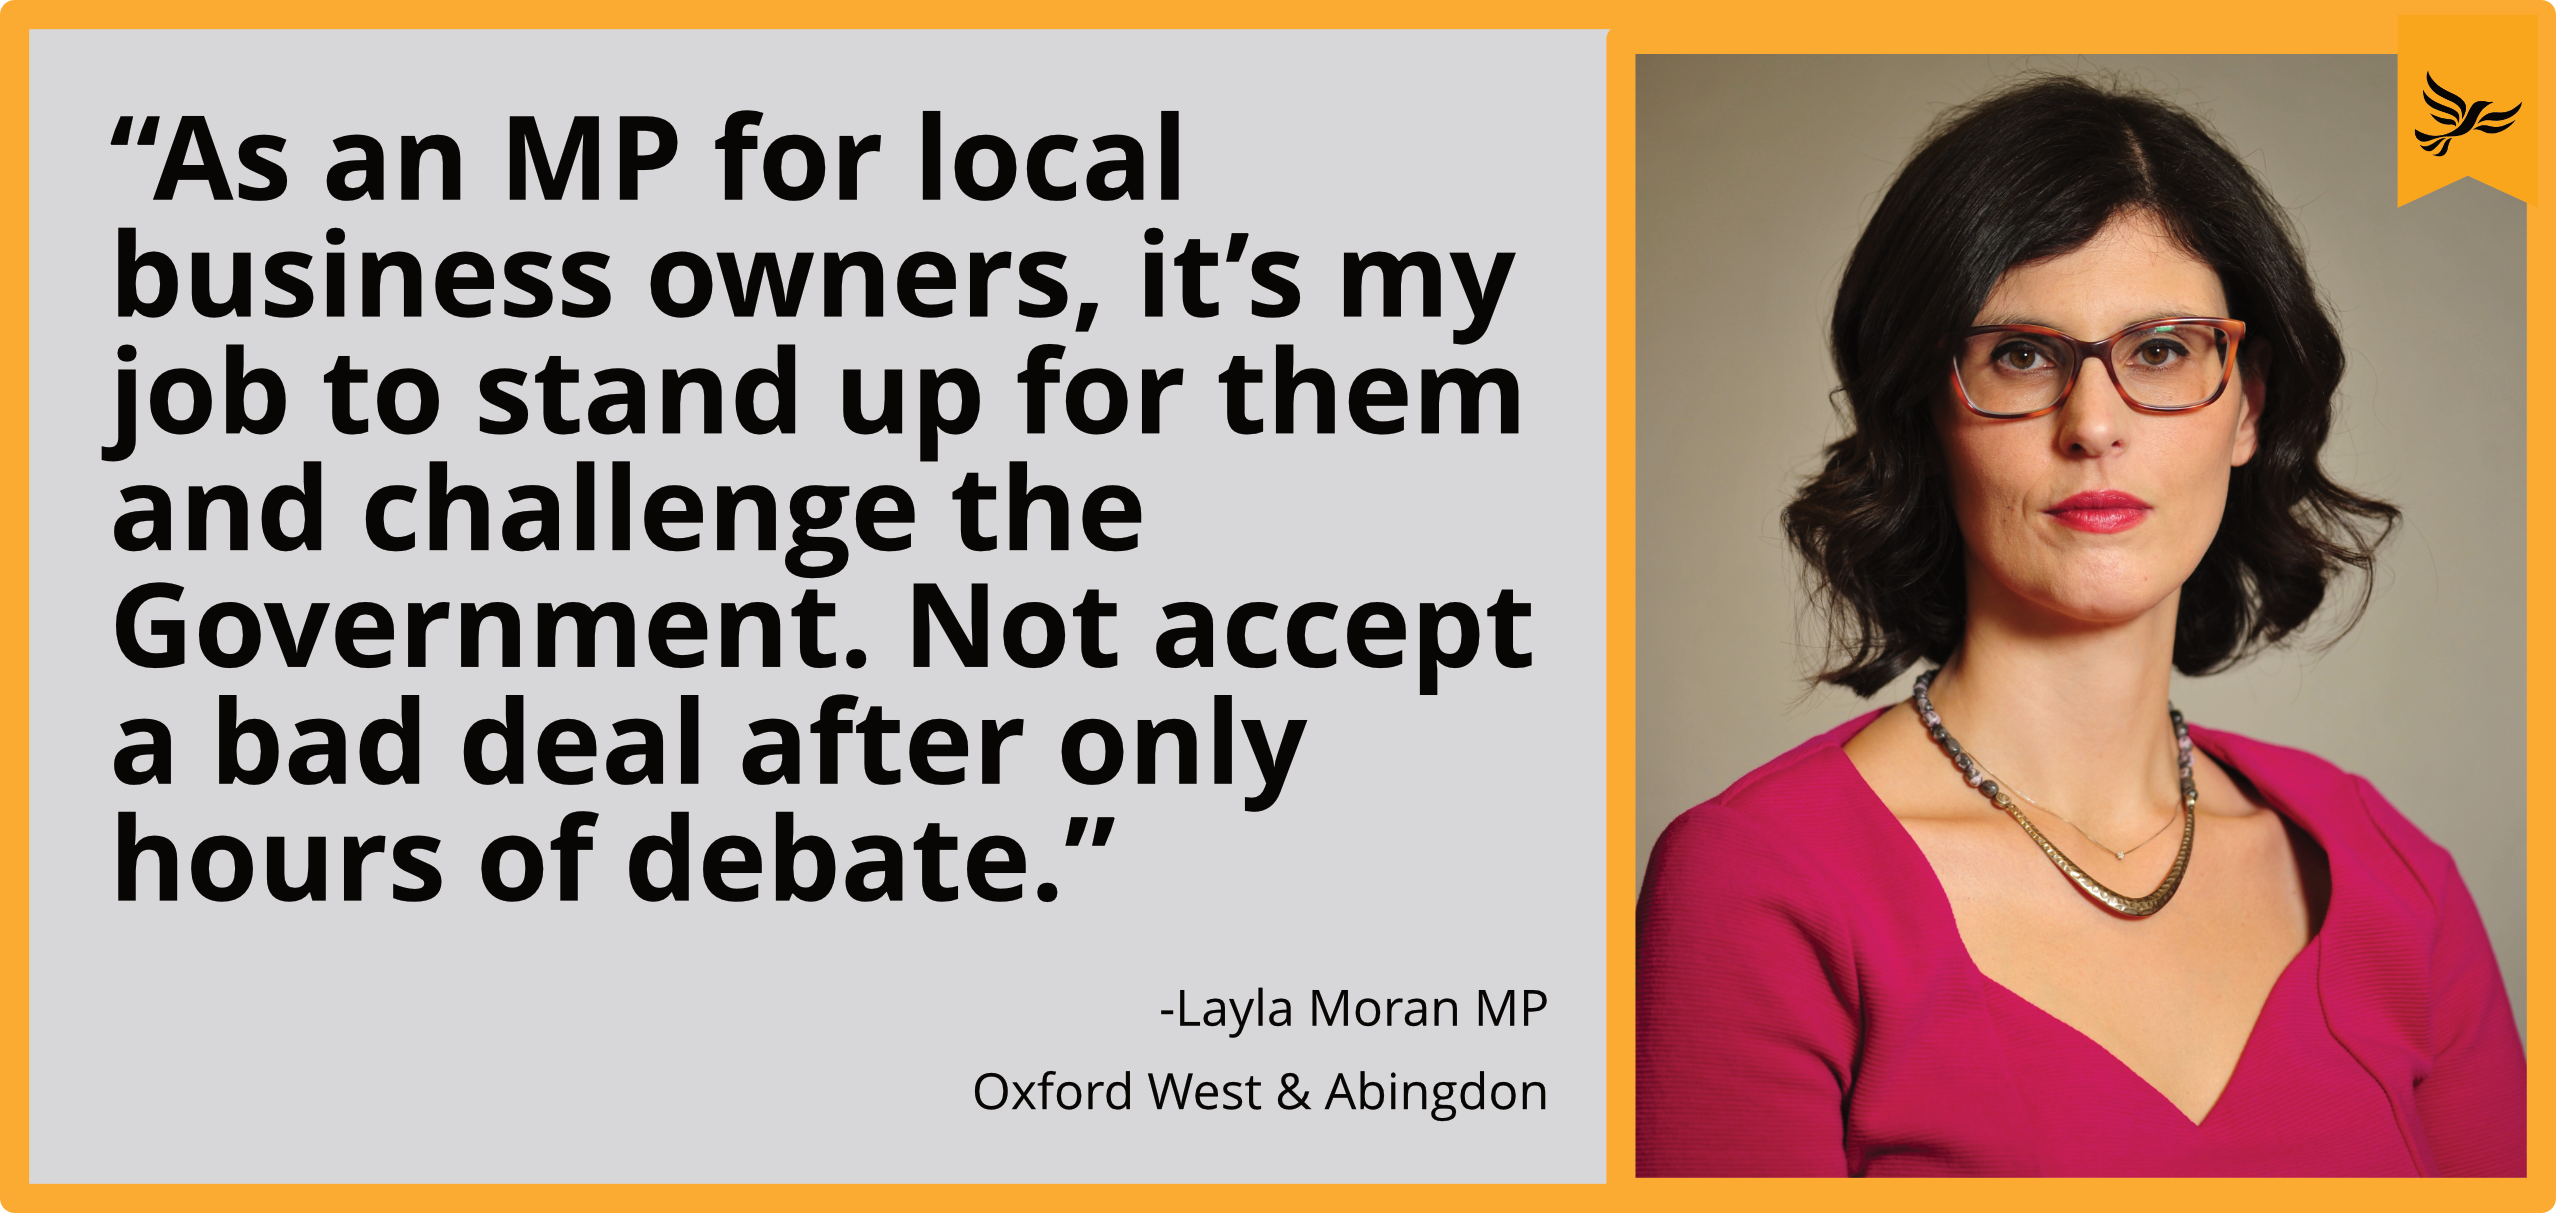 "as an MP for local business owners, ""it's my job to stand up for them and challenge the Government. Not accept a bad deal after only hours of debate."""